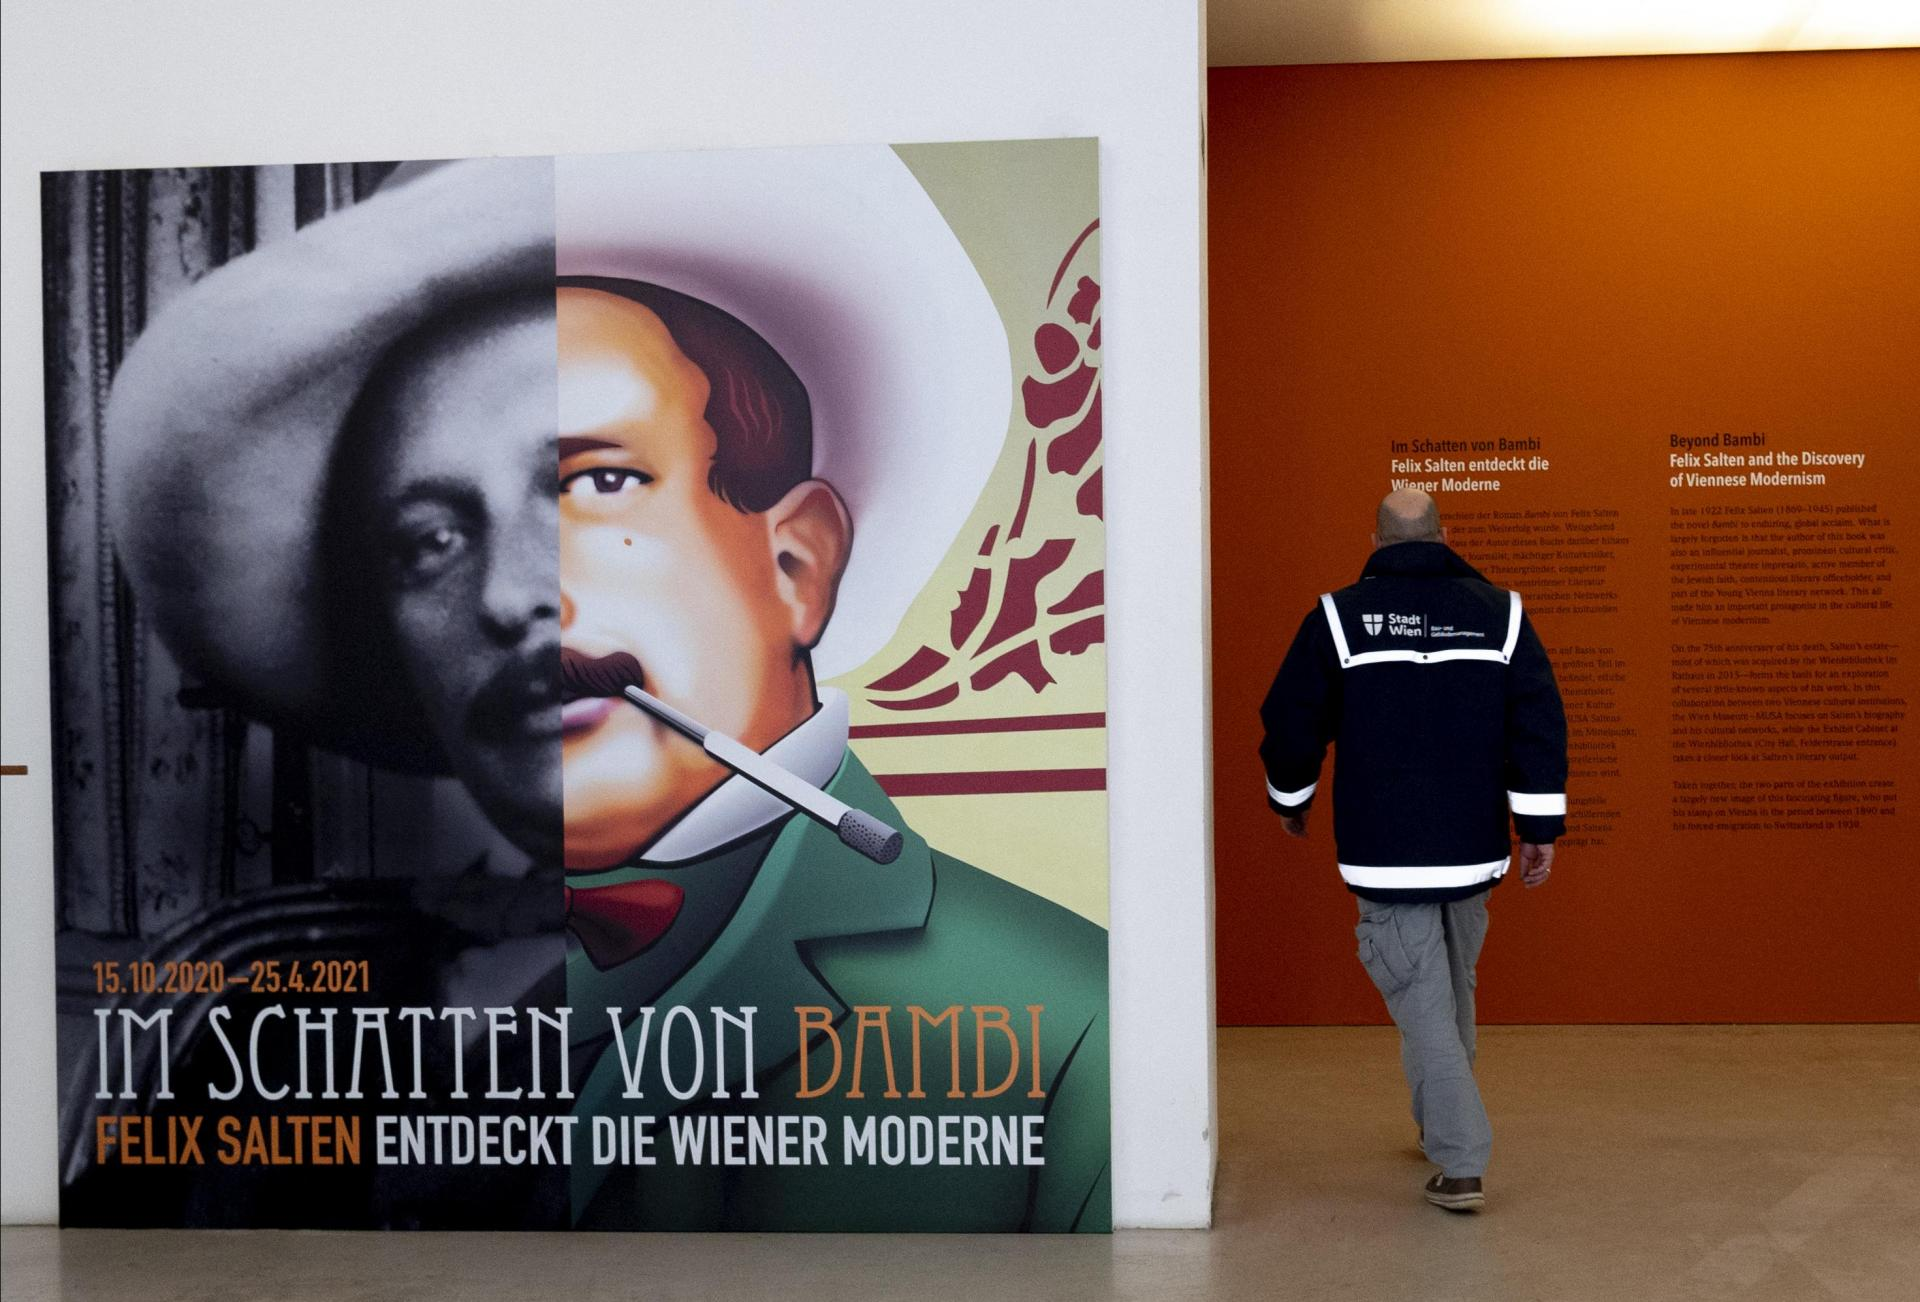 A man passes by a poster of Felix Salten as he enters the exhibition 'Beyond Bambi - Felix Salten and the Discovery of Viennese Modernism'.